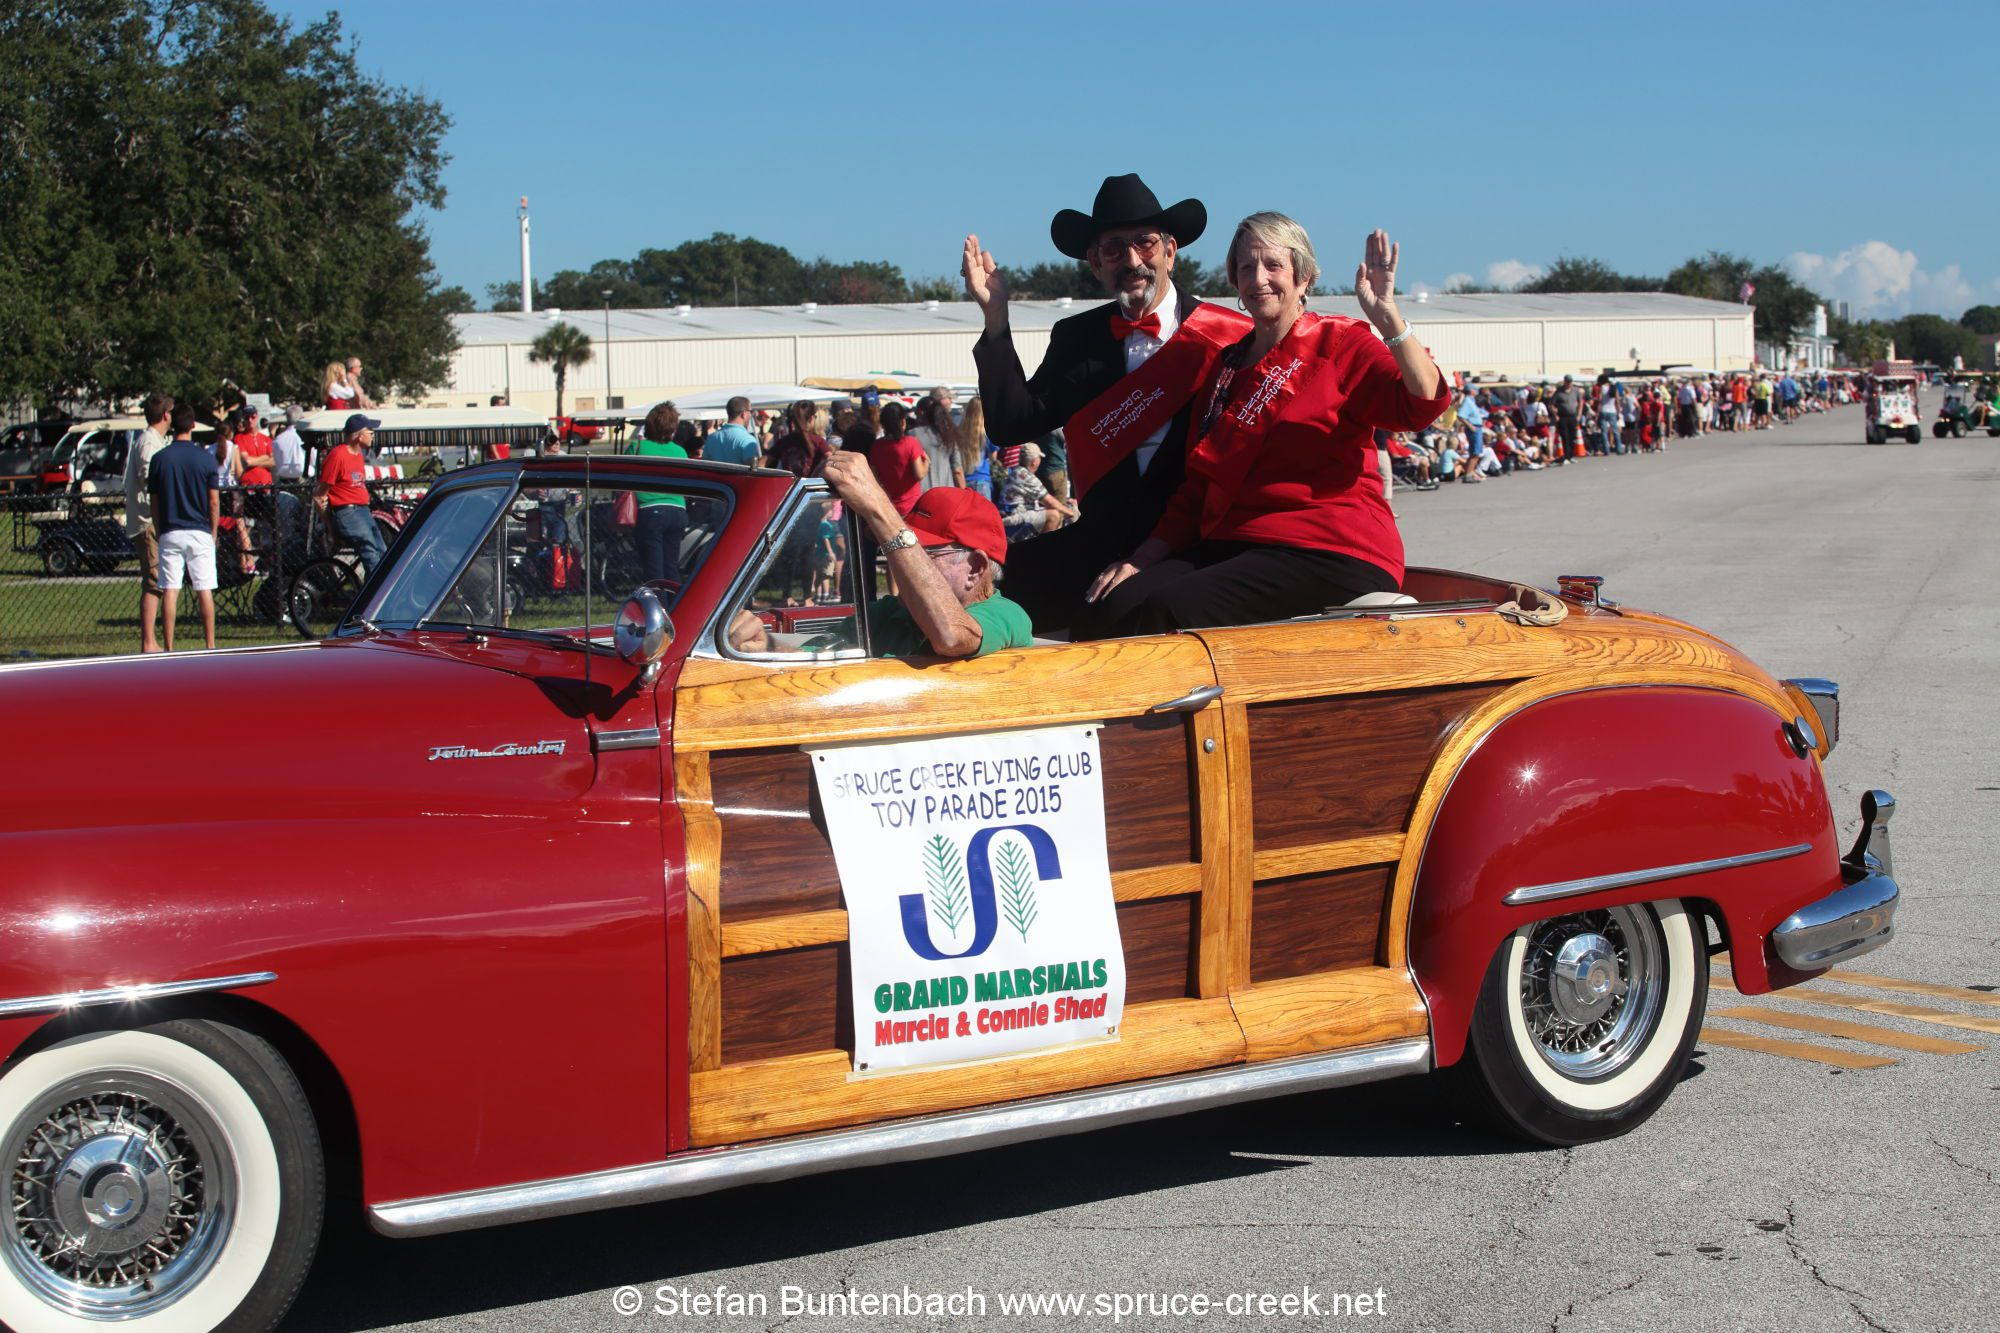 Spruce-Creek-Toyparade-2015- IMG_1461